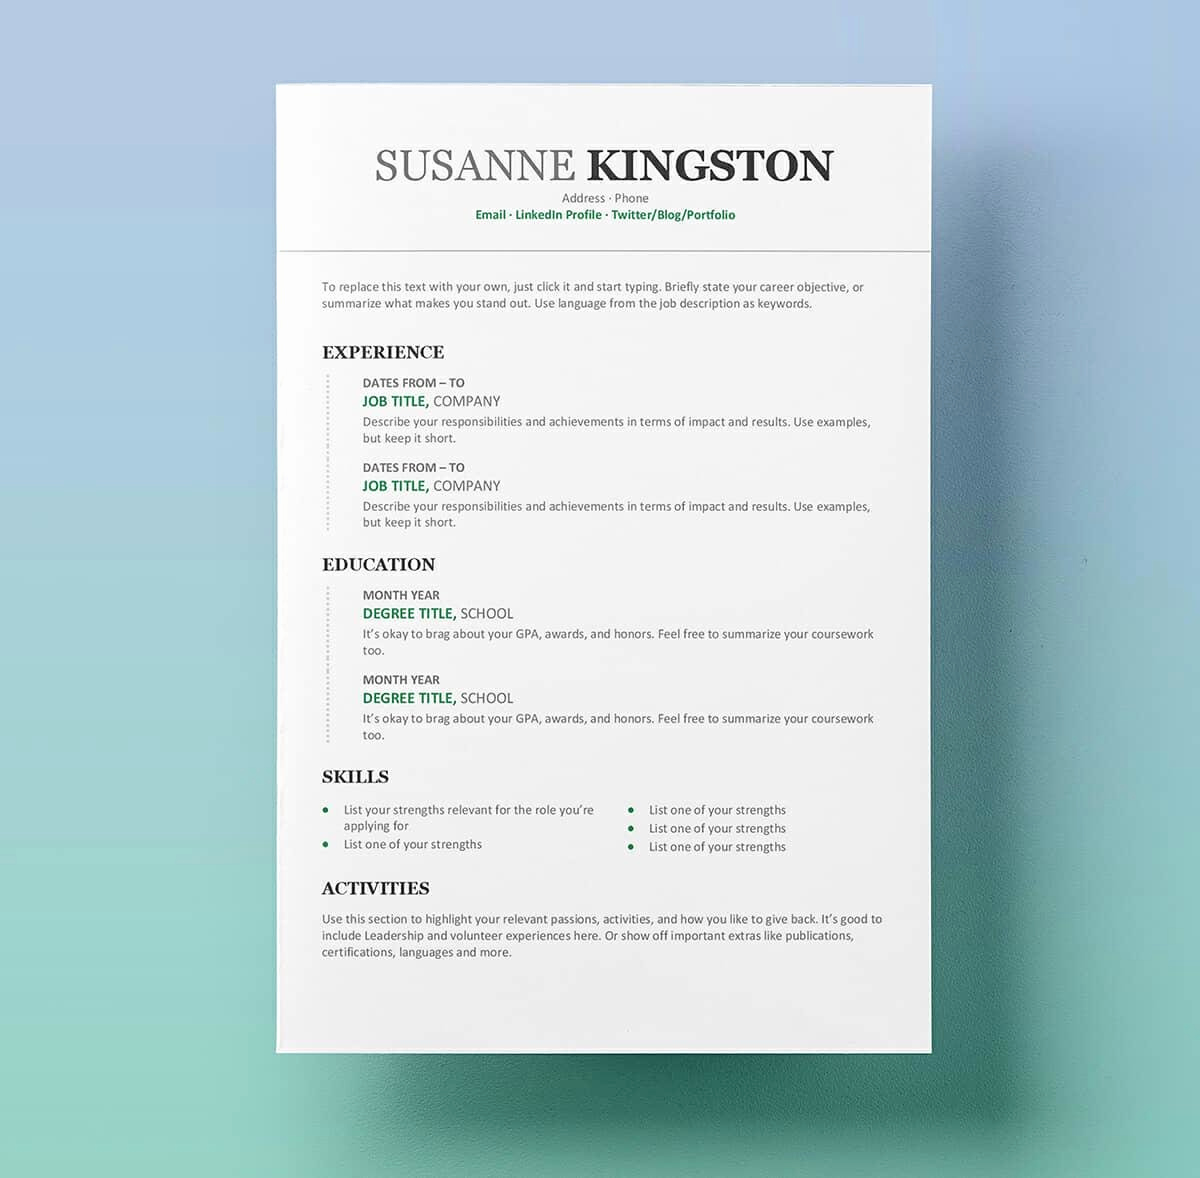 Free Simple Resume Templates Fresh Resume Templates for Word Free 15 Examples for Download